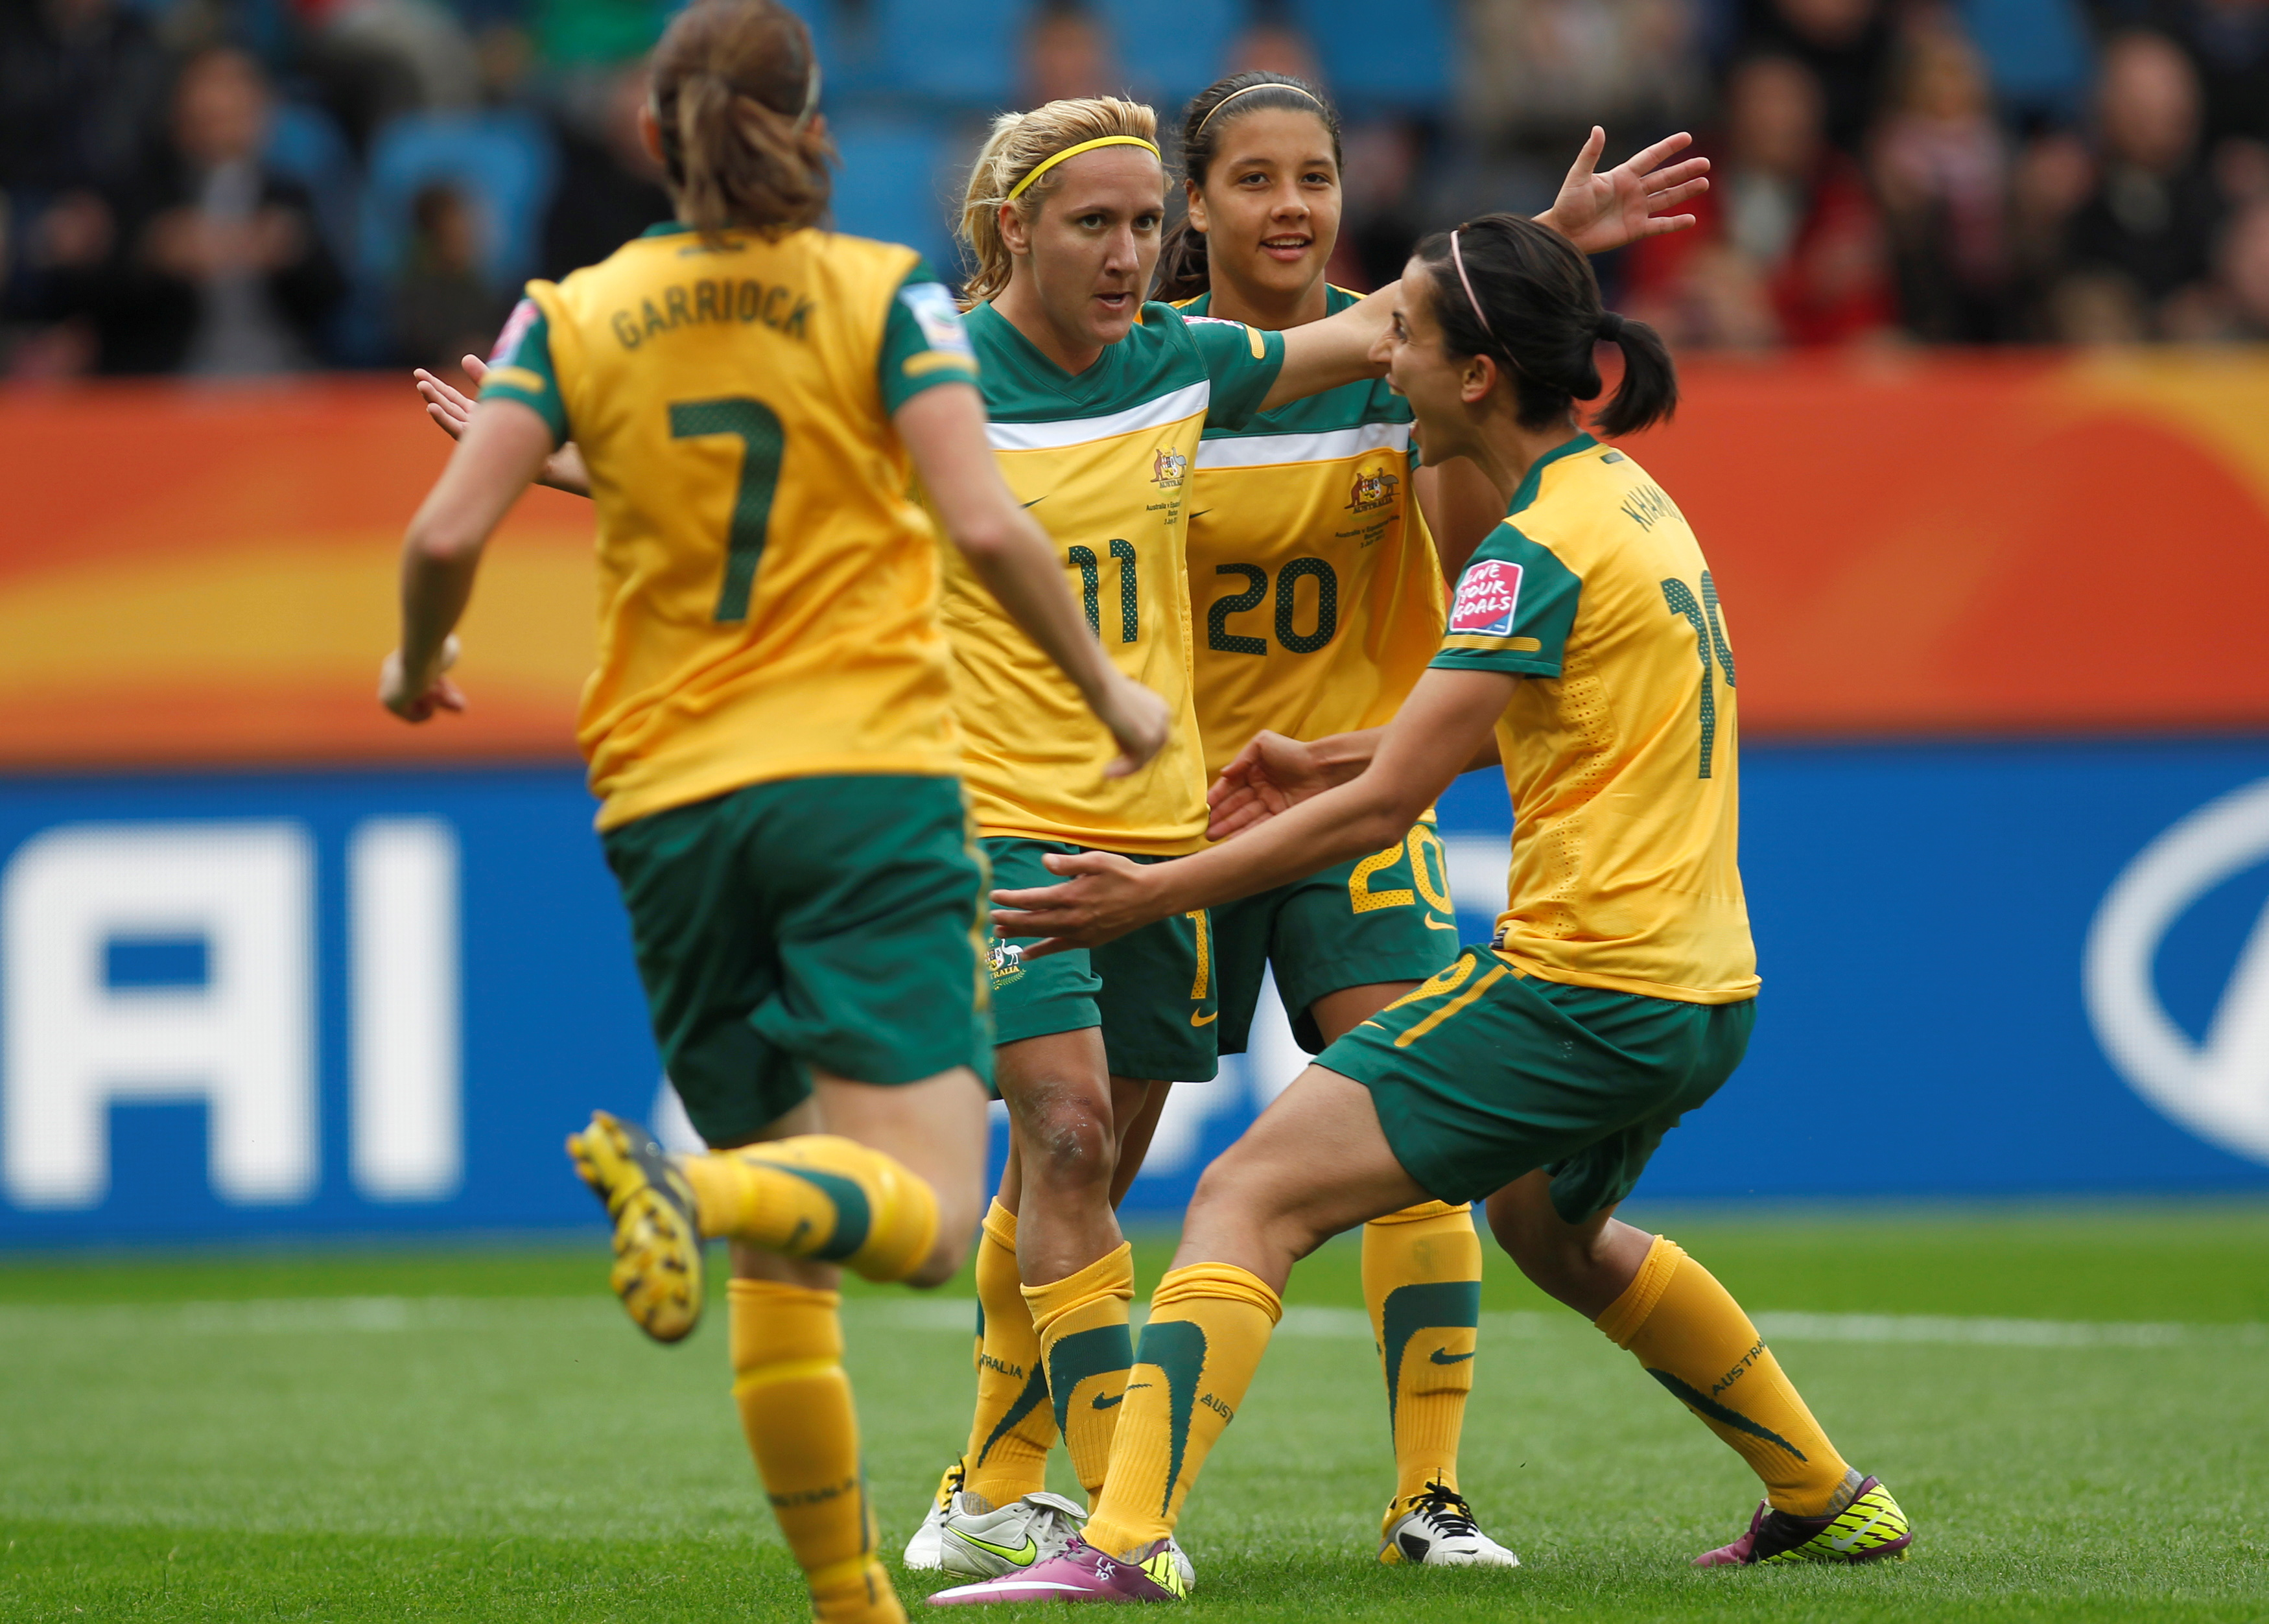 Lisa de Vanna  (2L) Samantha Kerr (2R) and Leena Khamis of Australia celebrate a goal against of Equatorial Guinea during their Women's World Cup Group D soccer match in Bochum July 3, 2011.    REUTERS/Ina Fassbender